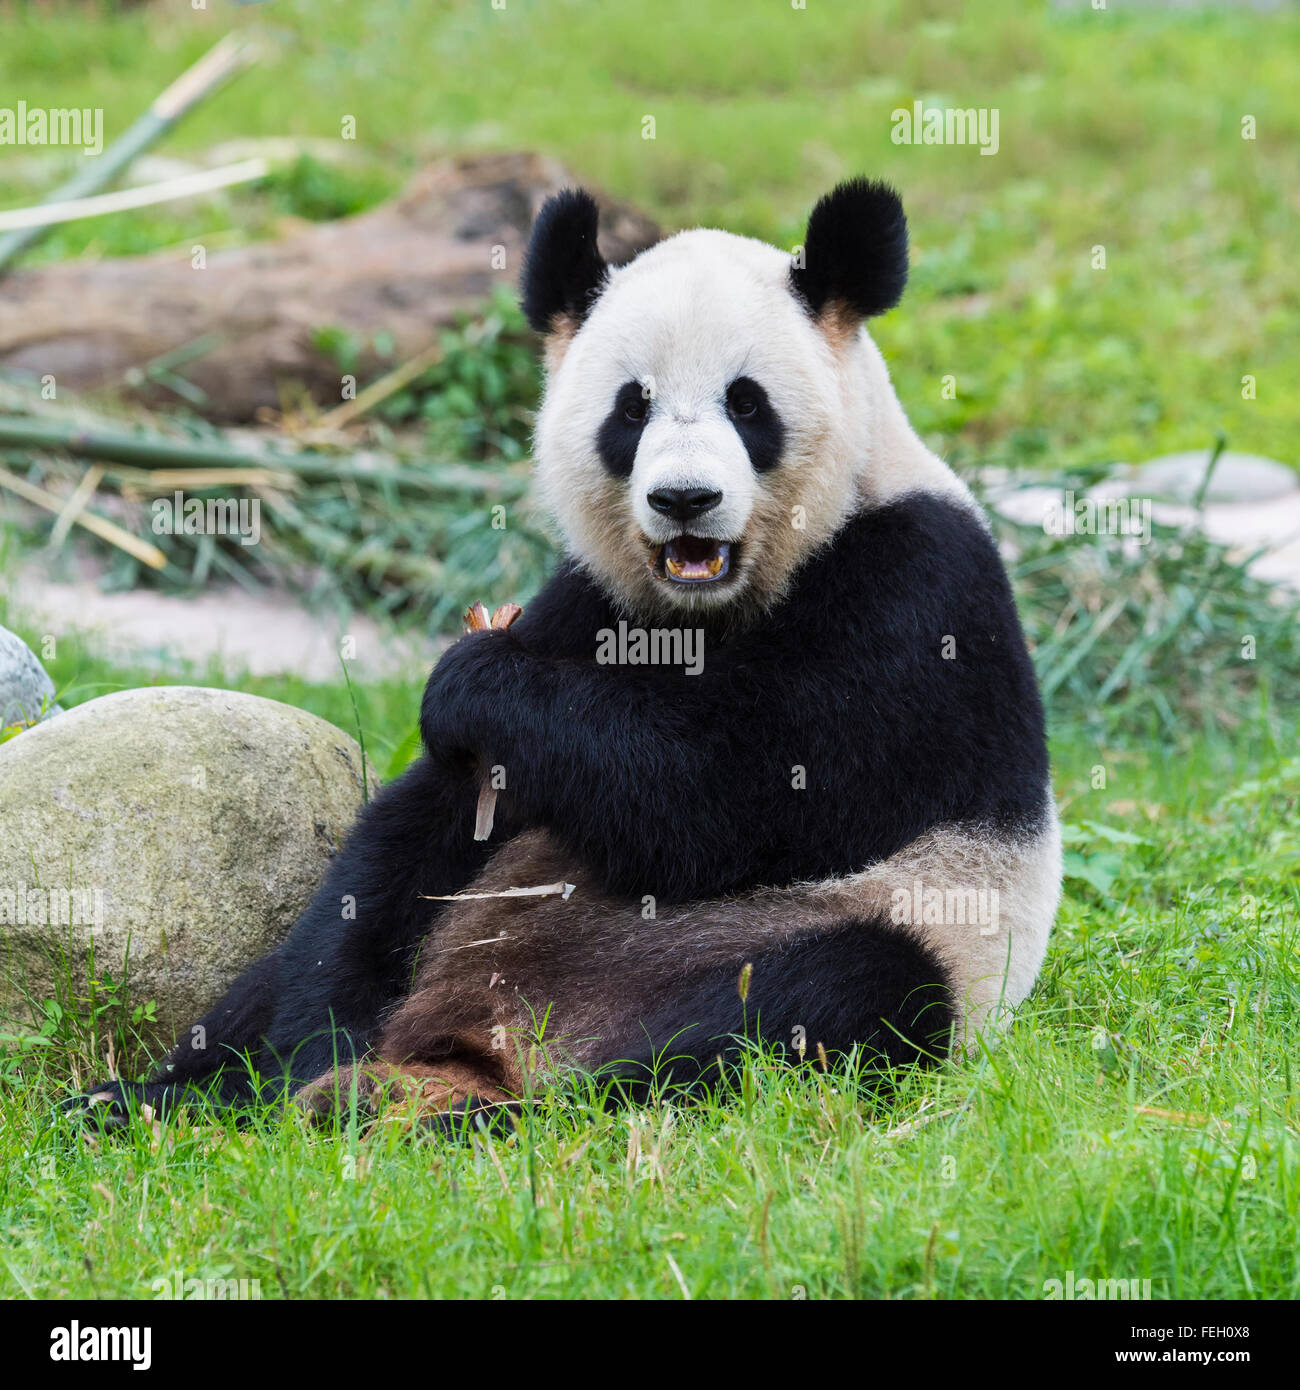 Giant Panda (Ailuropoda melanoleuca), China Conservation and Research Centre for the Giant Pandas, Chengdu, Sichuan, Stock Photo